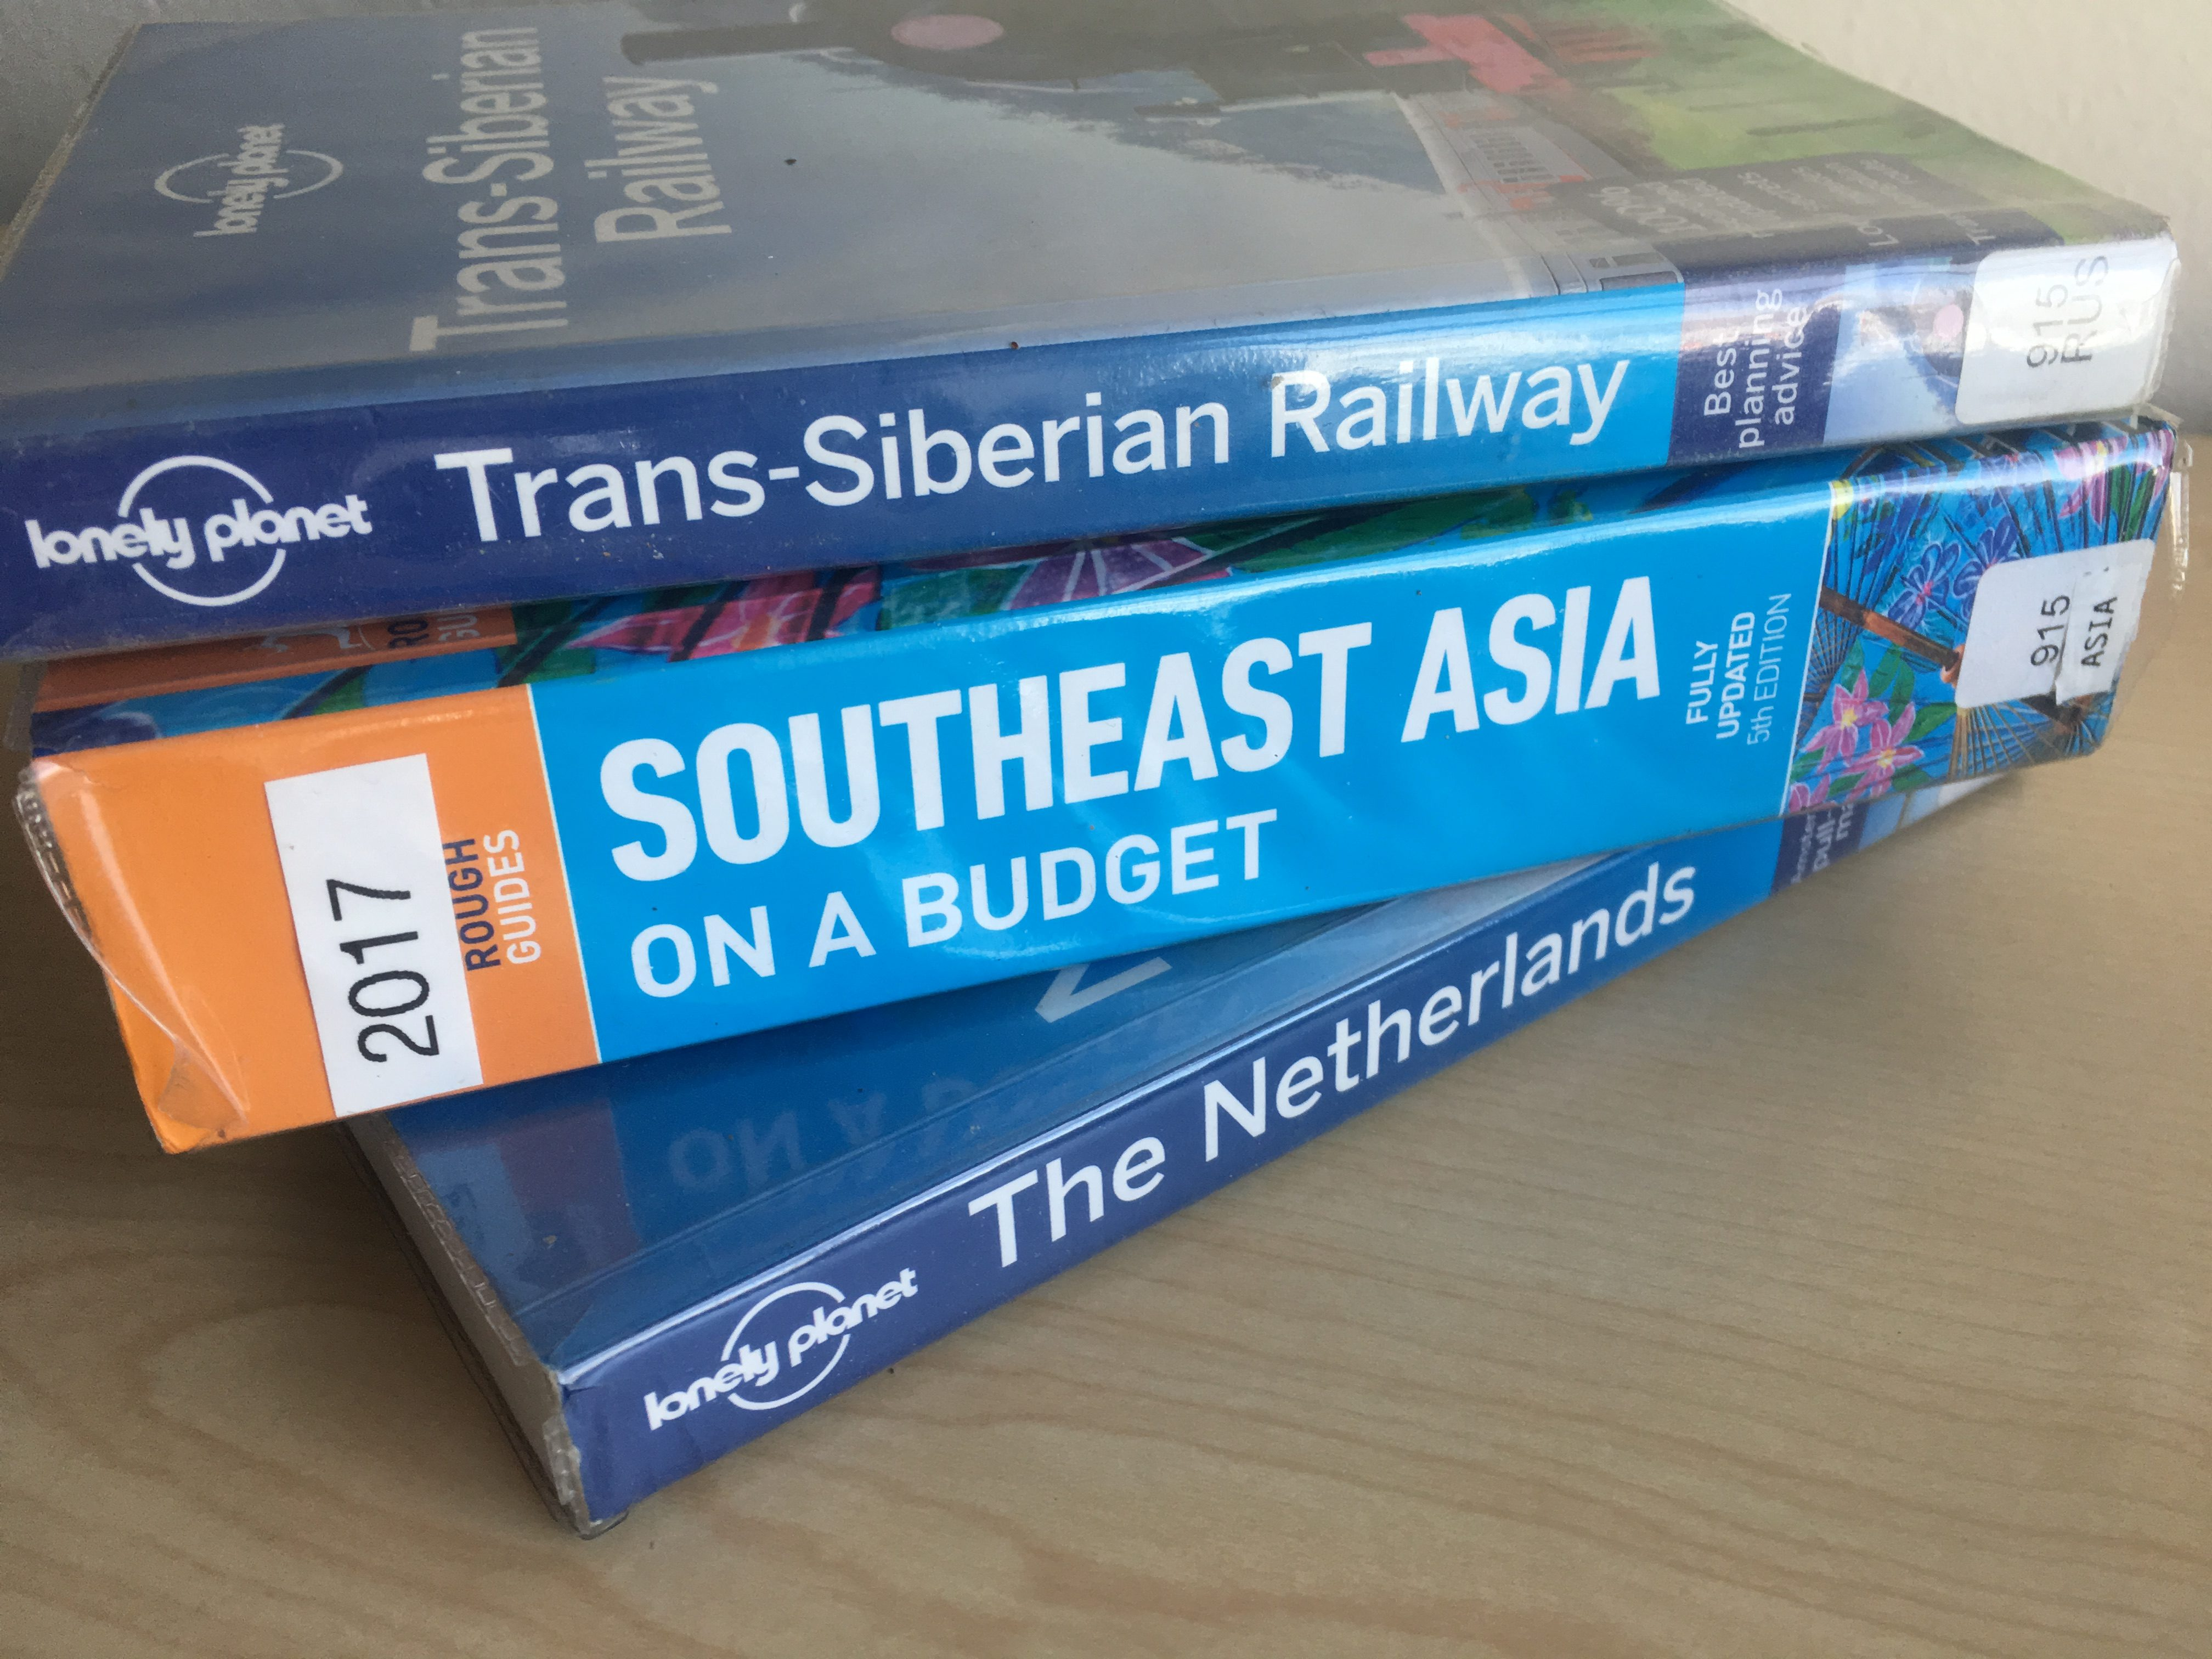 Lonely Planet guides for planning